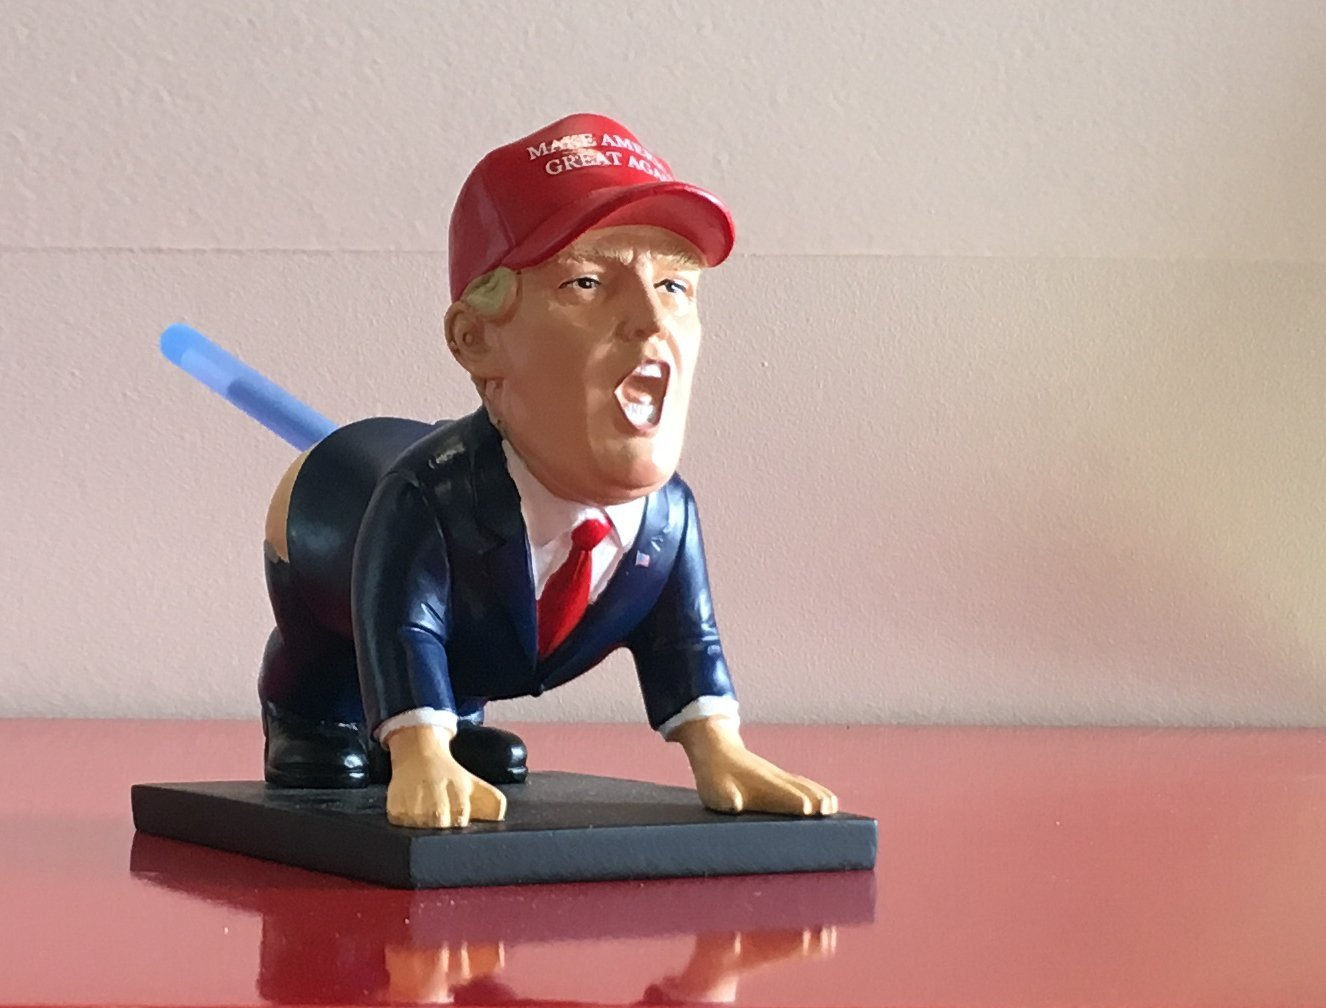 Trump Pen Holder 2 from Right Hand Side